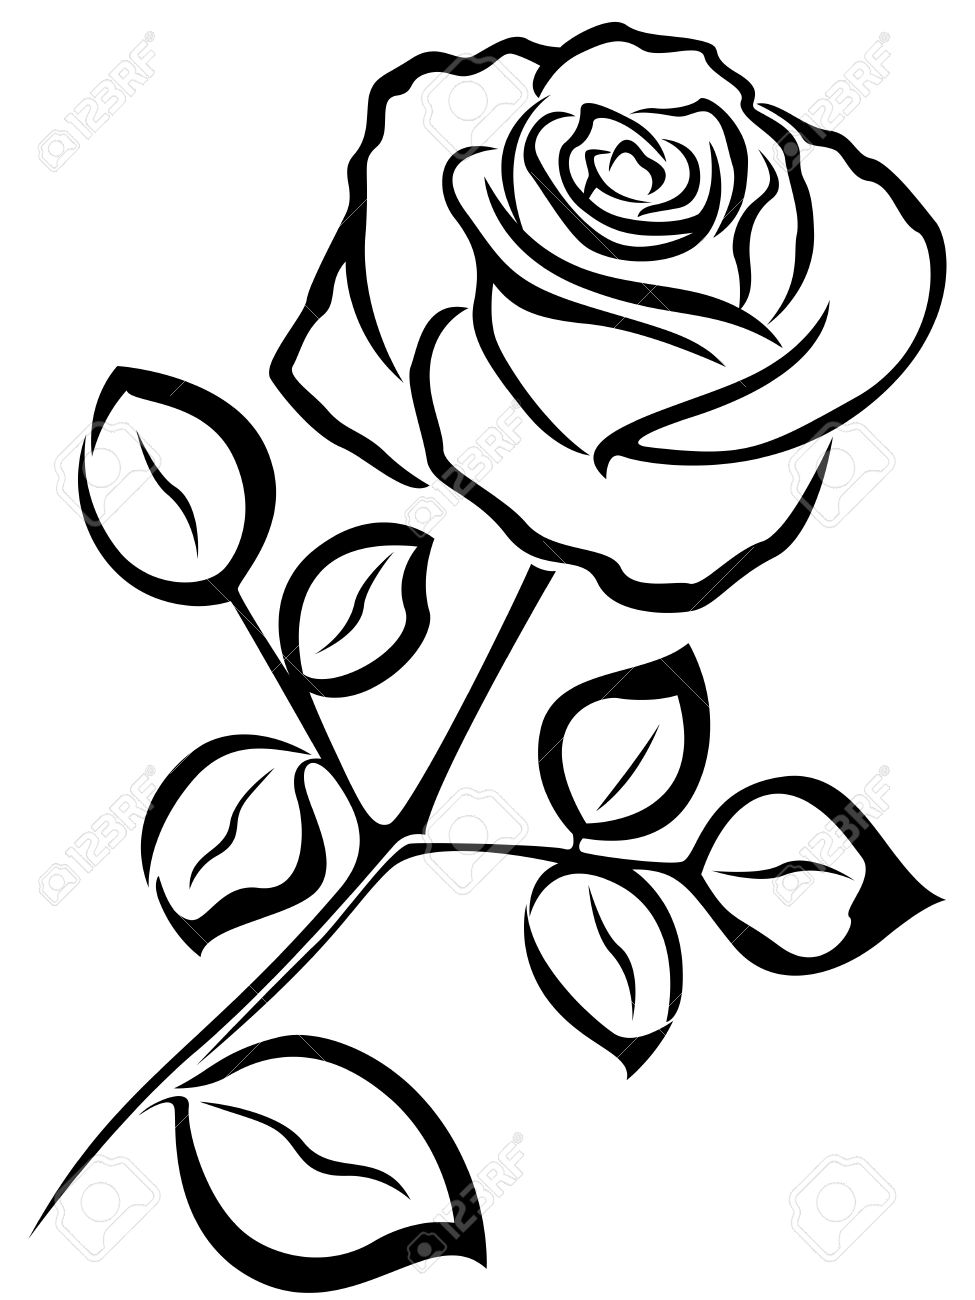 Roses in black and white drawing at getdrawings free for 975x1300 rose black and white collection 56 mightylinksfo